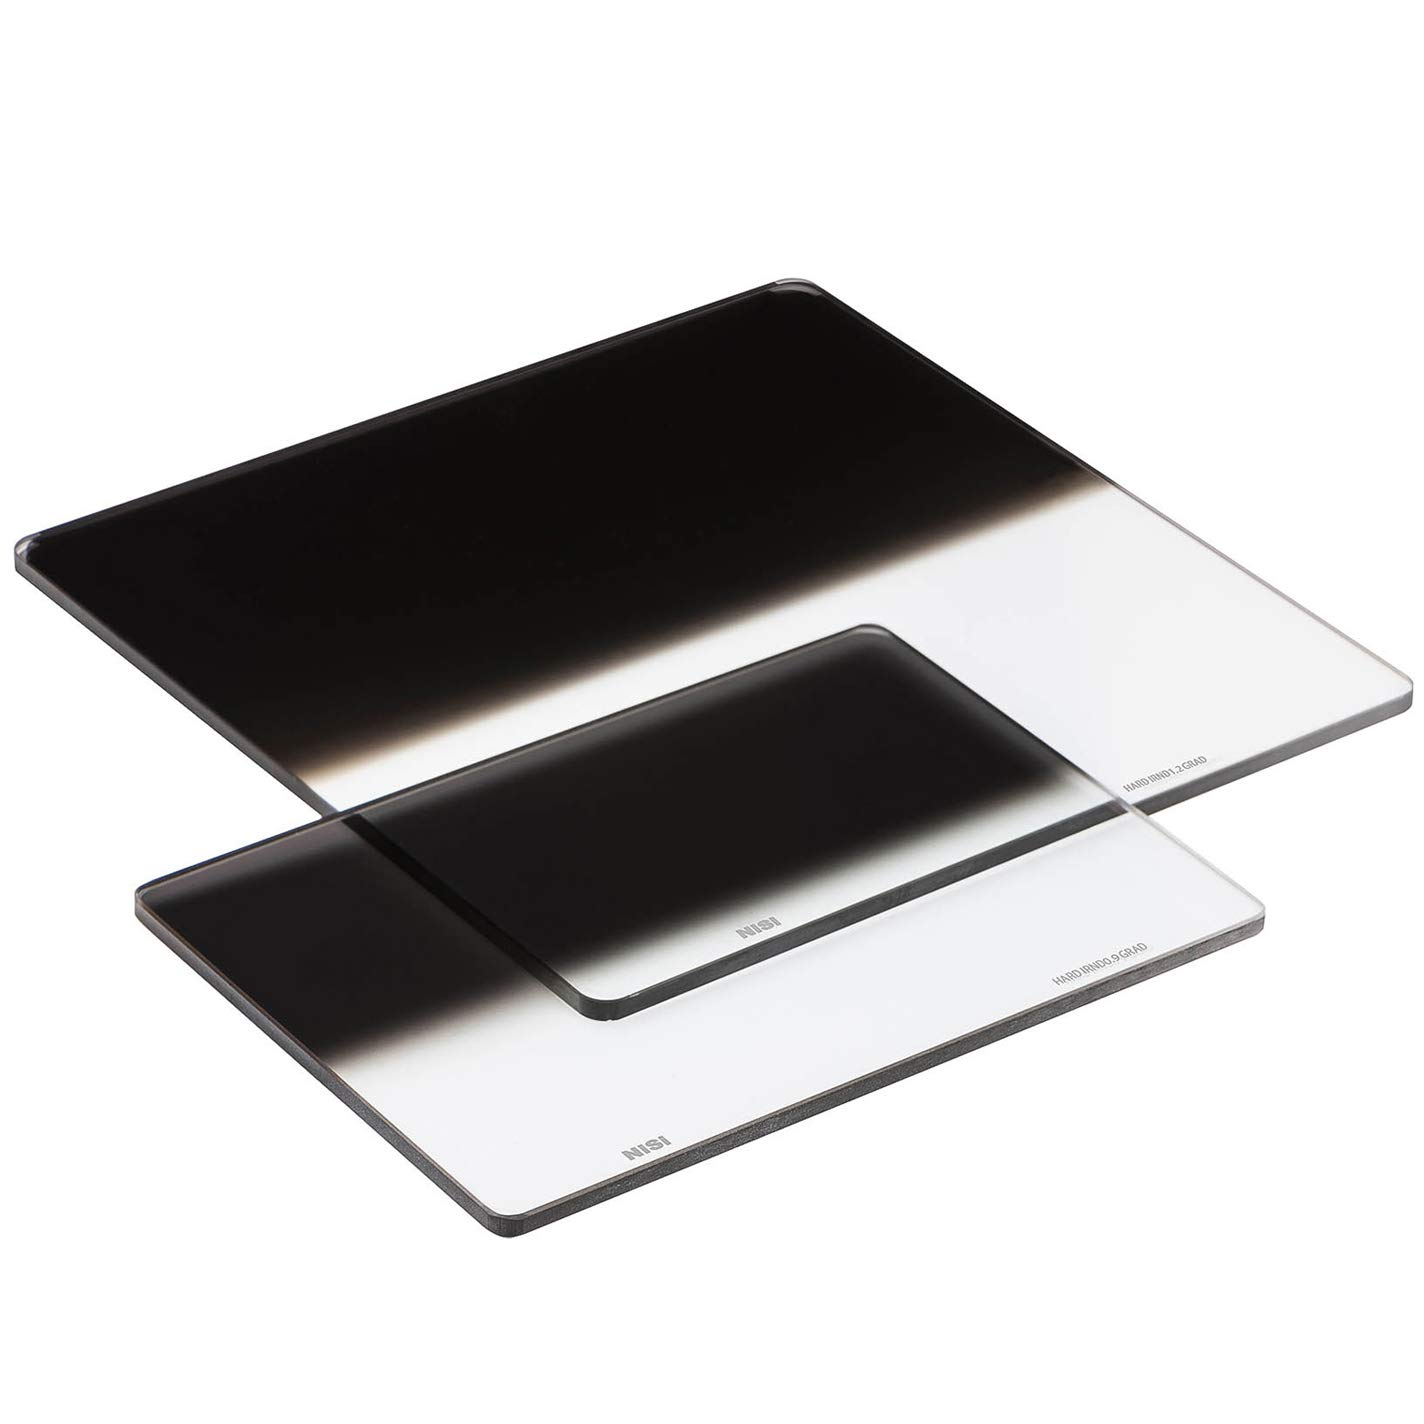 NiSi NIC-4565-HGND0.3 Hard Graduated 4 X 5.65 Glass Filter from Ikan, Black by NiSi (Image #1)